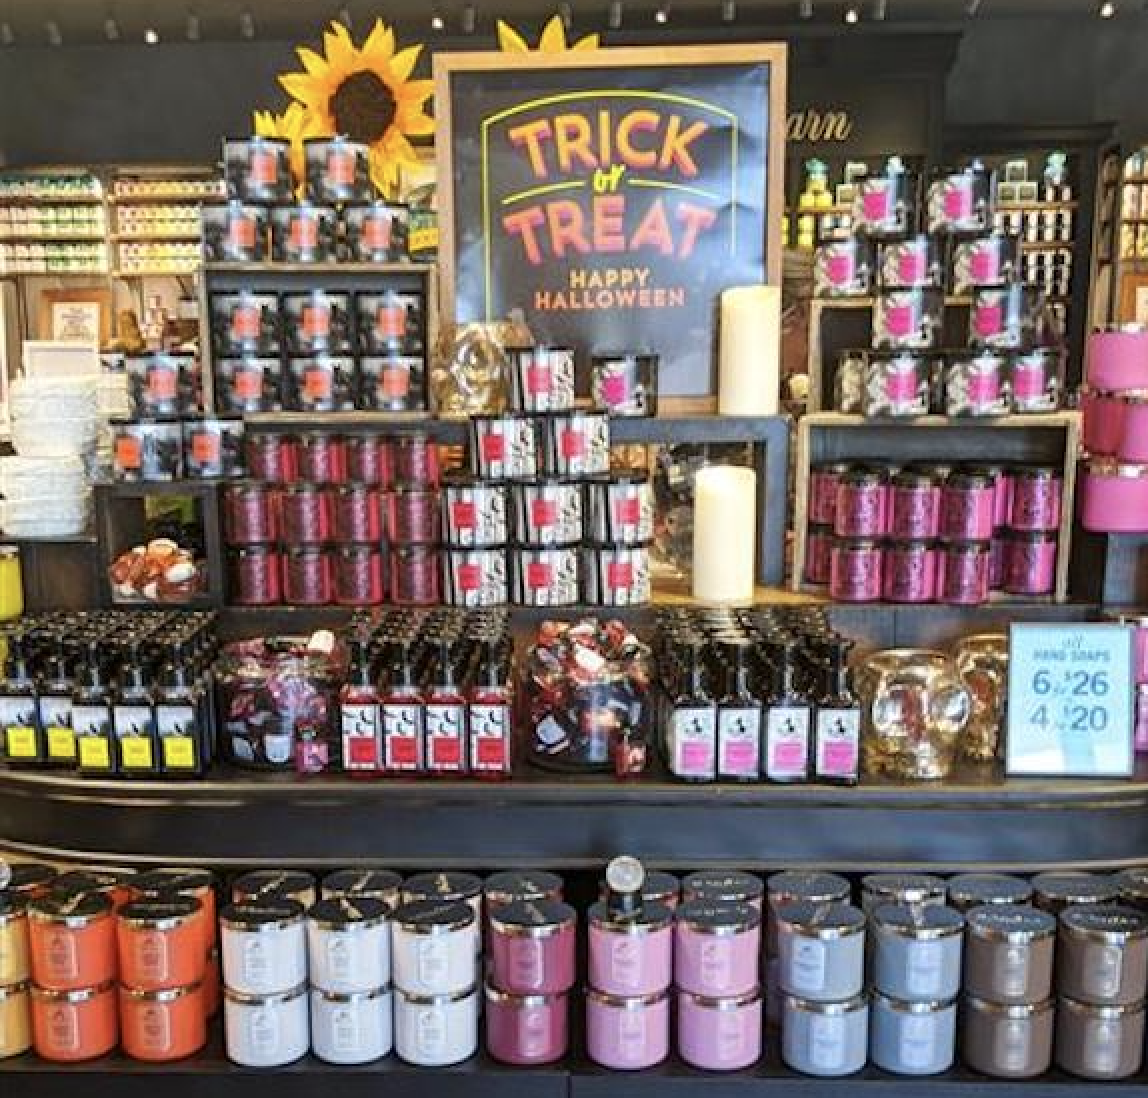 The countdown to Halloween is on! Head to @BathandBodyWorks to trick-or-treat yourself with NEW scary-good fragrances & décor – in stores NOW! 👻🔮🎃